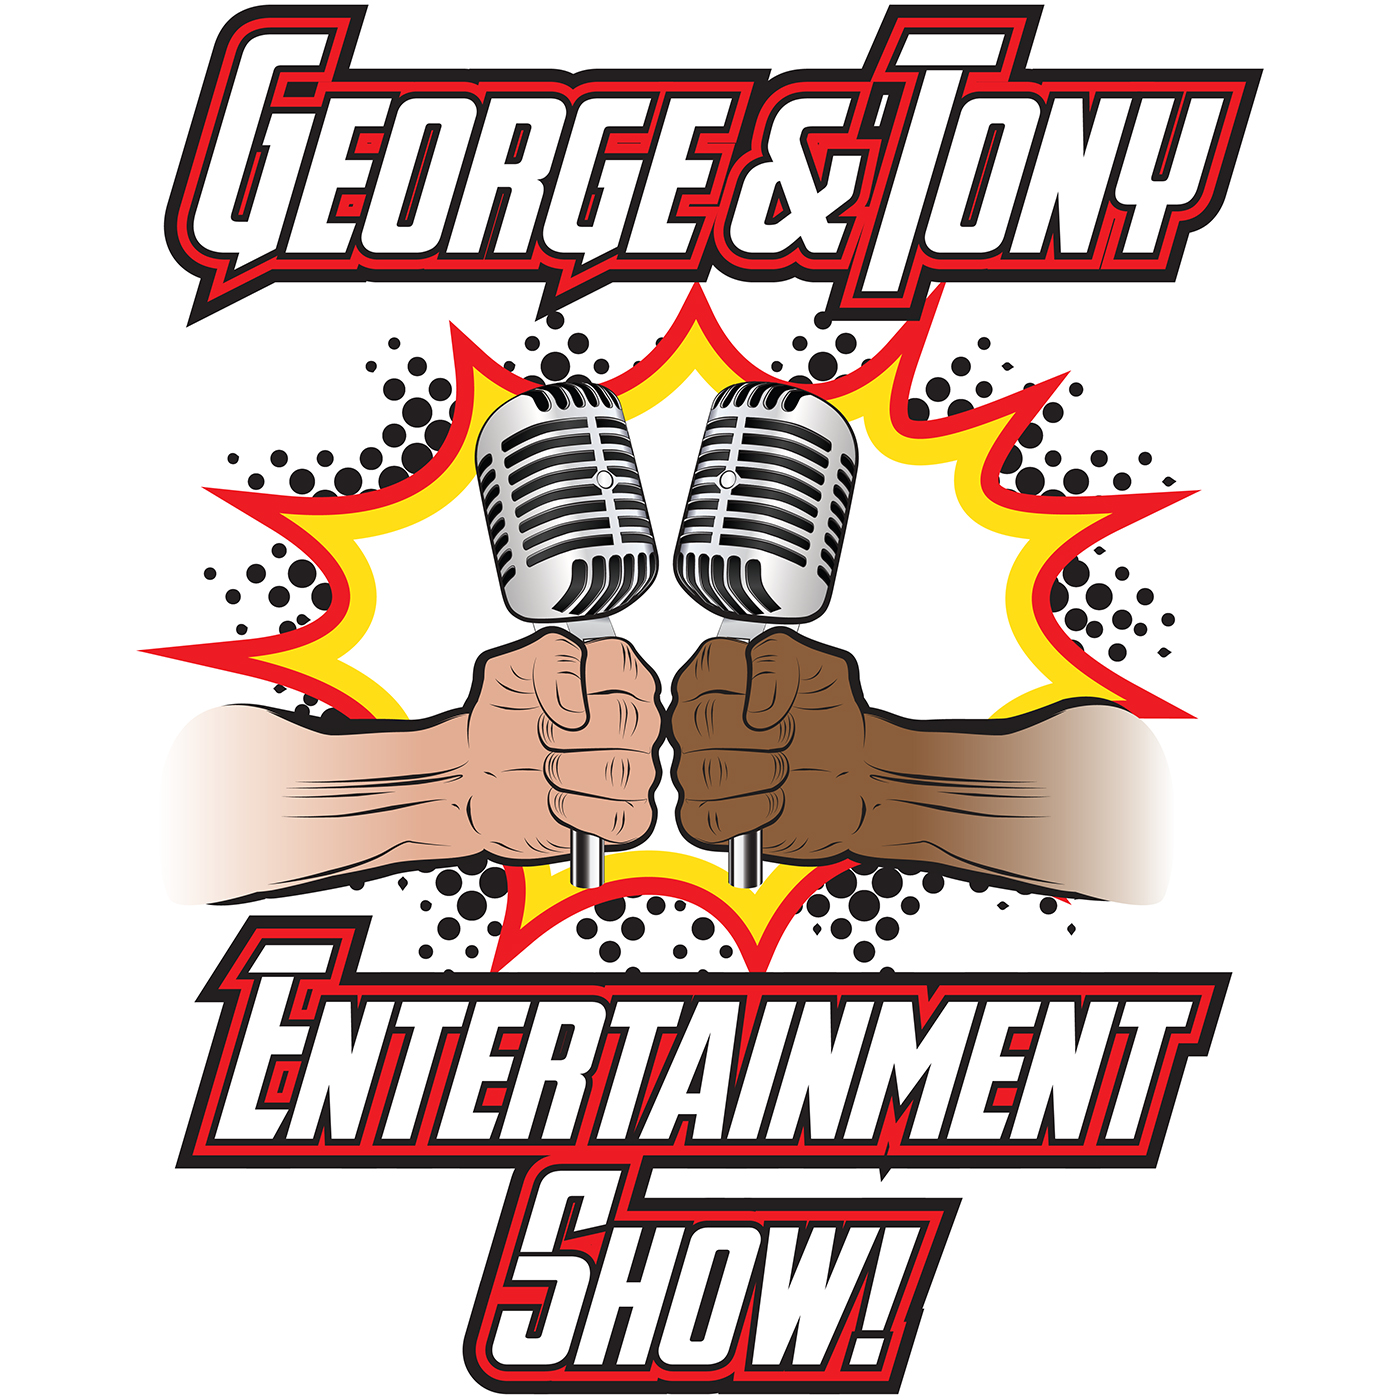 George and Tony Entertainment Show #94